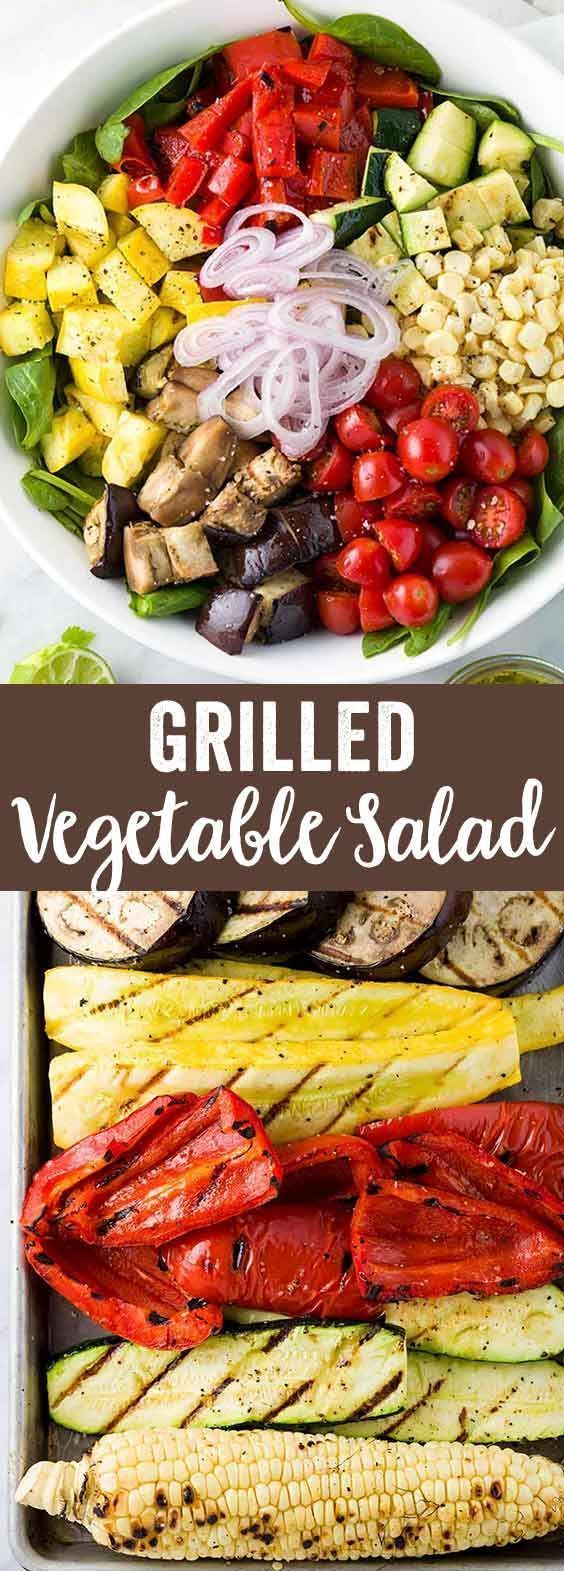 Grilled vegetable salad recipe tossed in a tangy citrus dressing. Fresh summer veggies cooked and roasted on the barbecue. A vegan-friendly combination of colors and nutrition in one healthy side dish. via @foodiegavin